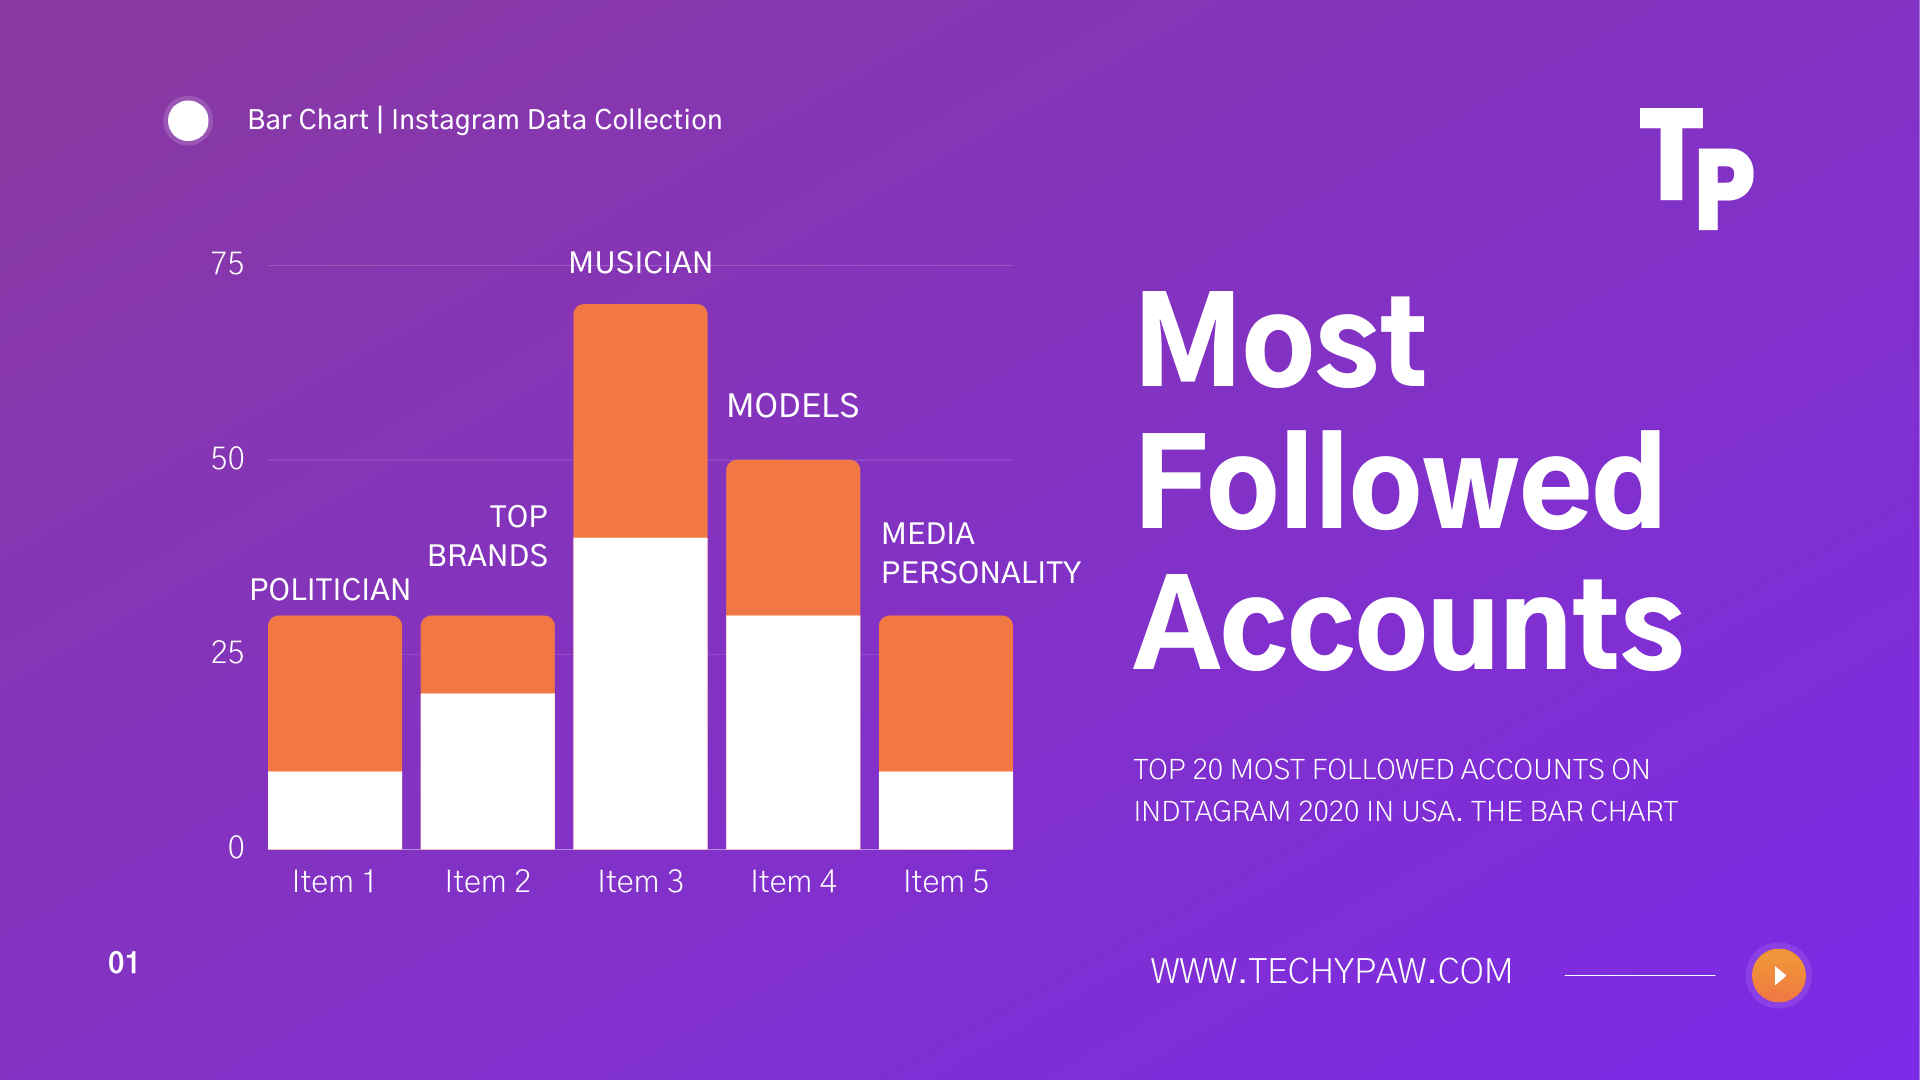 Top 20 Most Followed Accounts on Instagram In USA